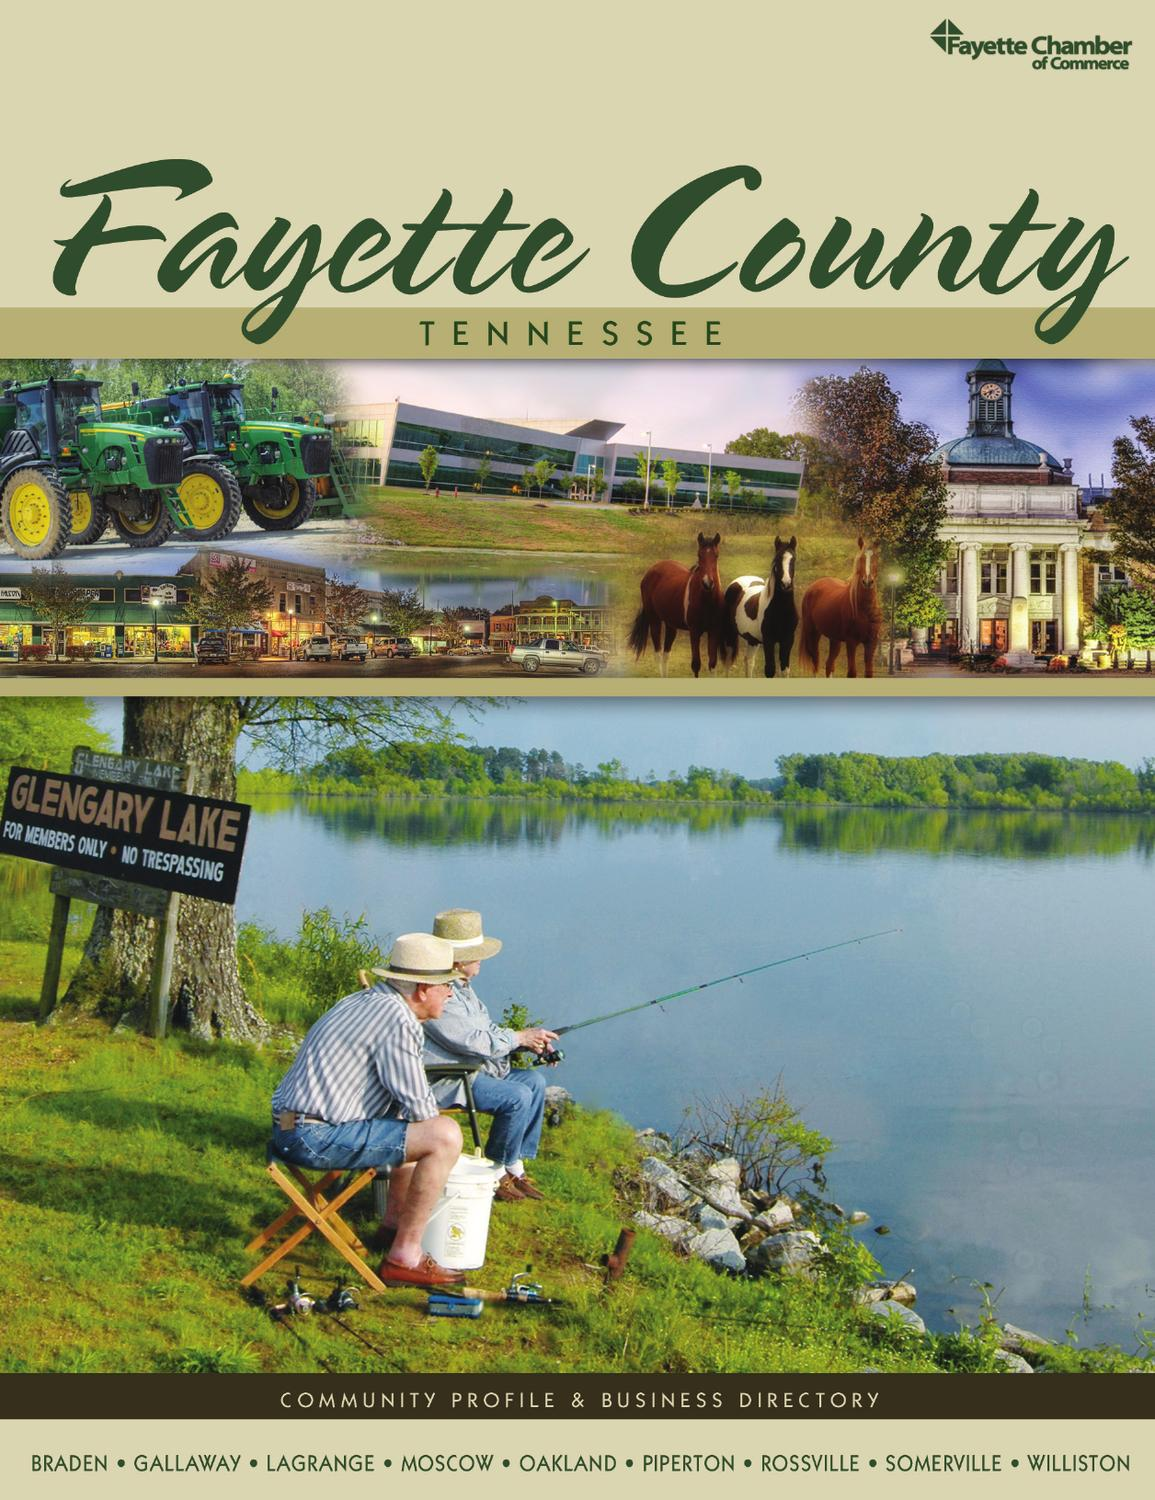 Tennessee fayette county rossville - Fayette County Tn 2013 Community Profile And Business Directory By Communitylink Issuu